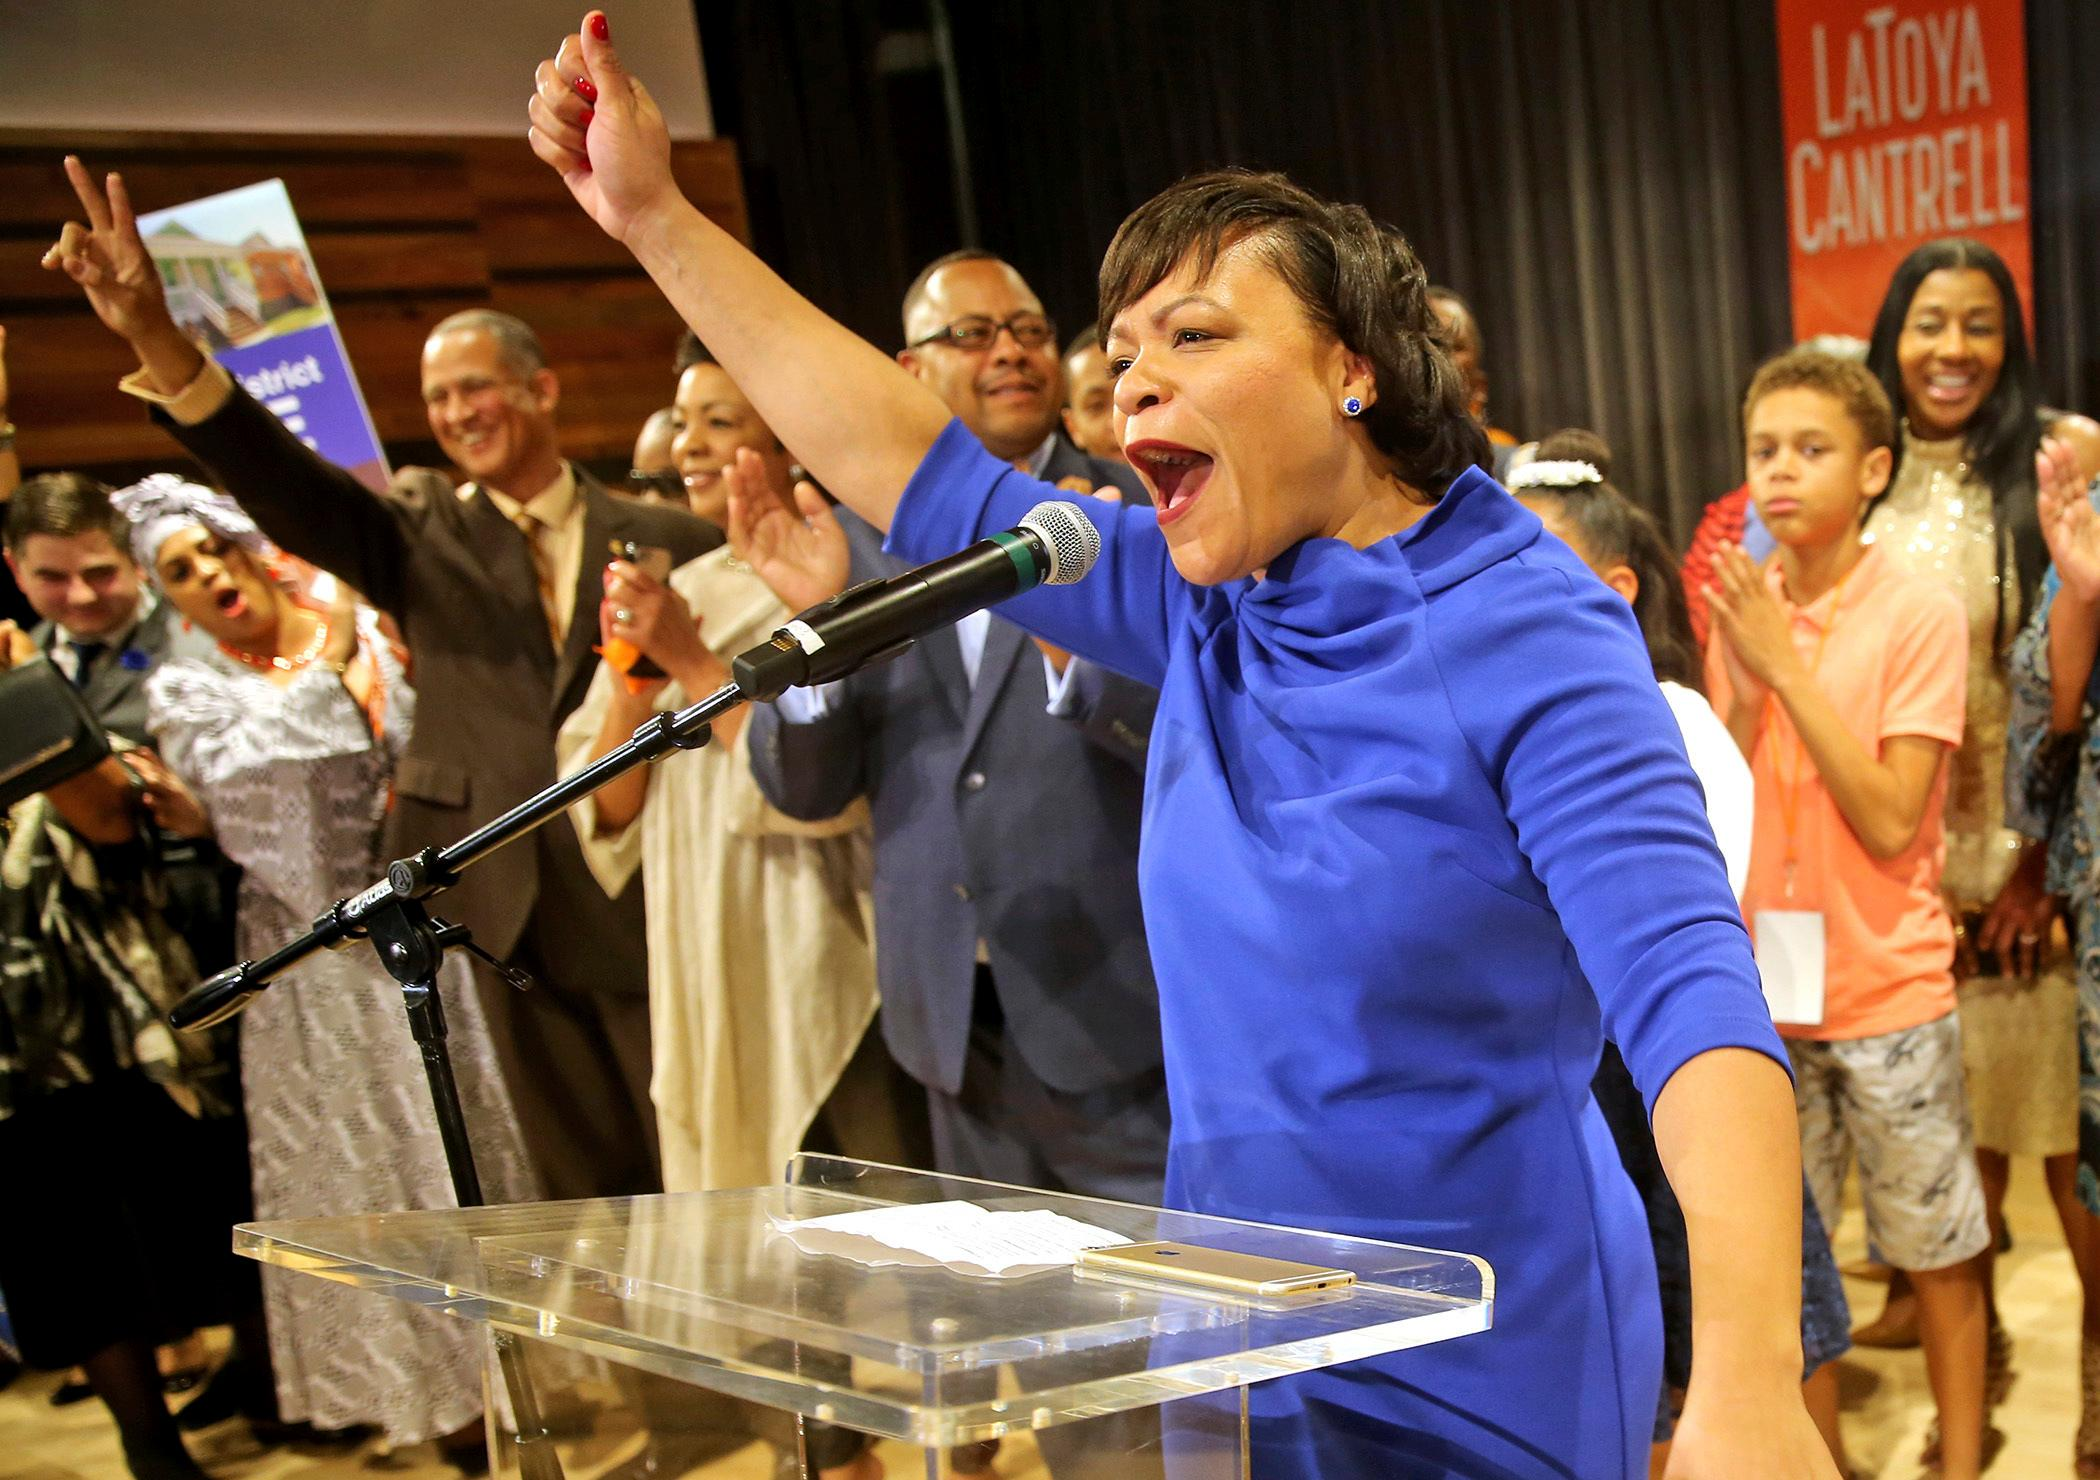 LaToya Cantrell celebrates her victory in the New Orleans mayoral election during her election party at the New Orleans Jazz Market in Central City on Saturday, Nov. 18, 2017, in New Orleans. Cantrell, a City Council member who gained a political following as she worked to help her hard-hit neighborhood recover from Hurricane Katrina, was the victor Saturday night in an election that will make her the first woman mayor in New Orleans' history. (Michael DeMocker/NOLA.com The Times-Picayune via AP)